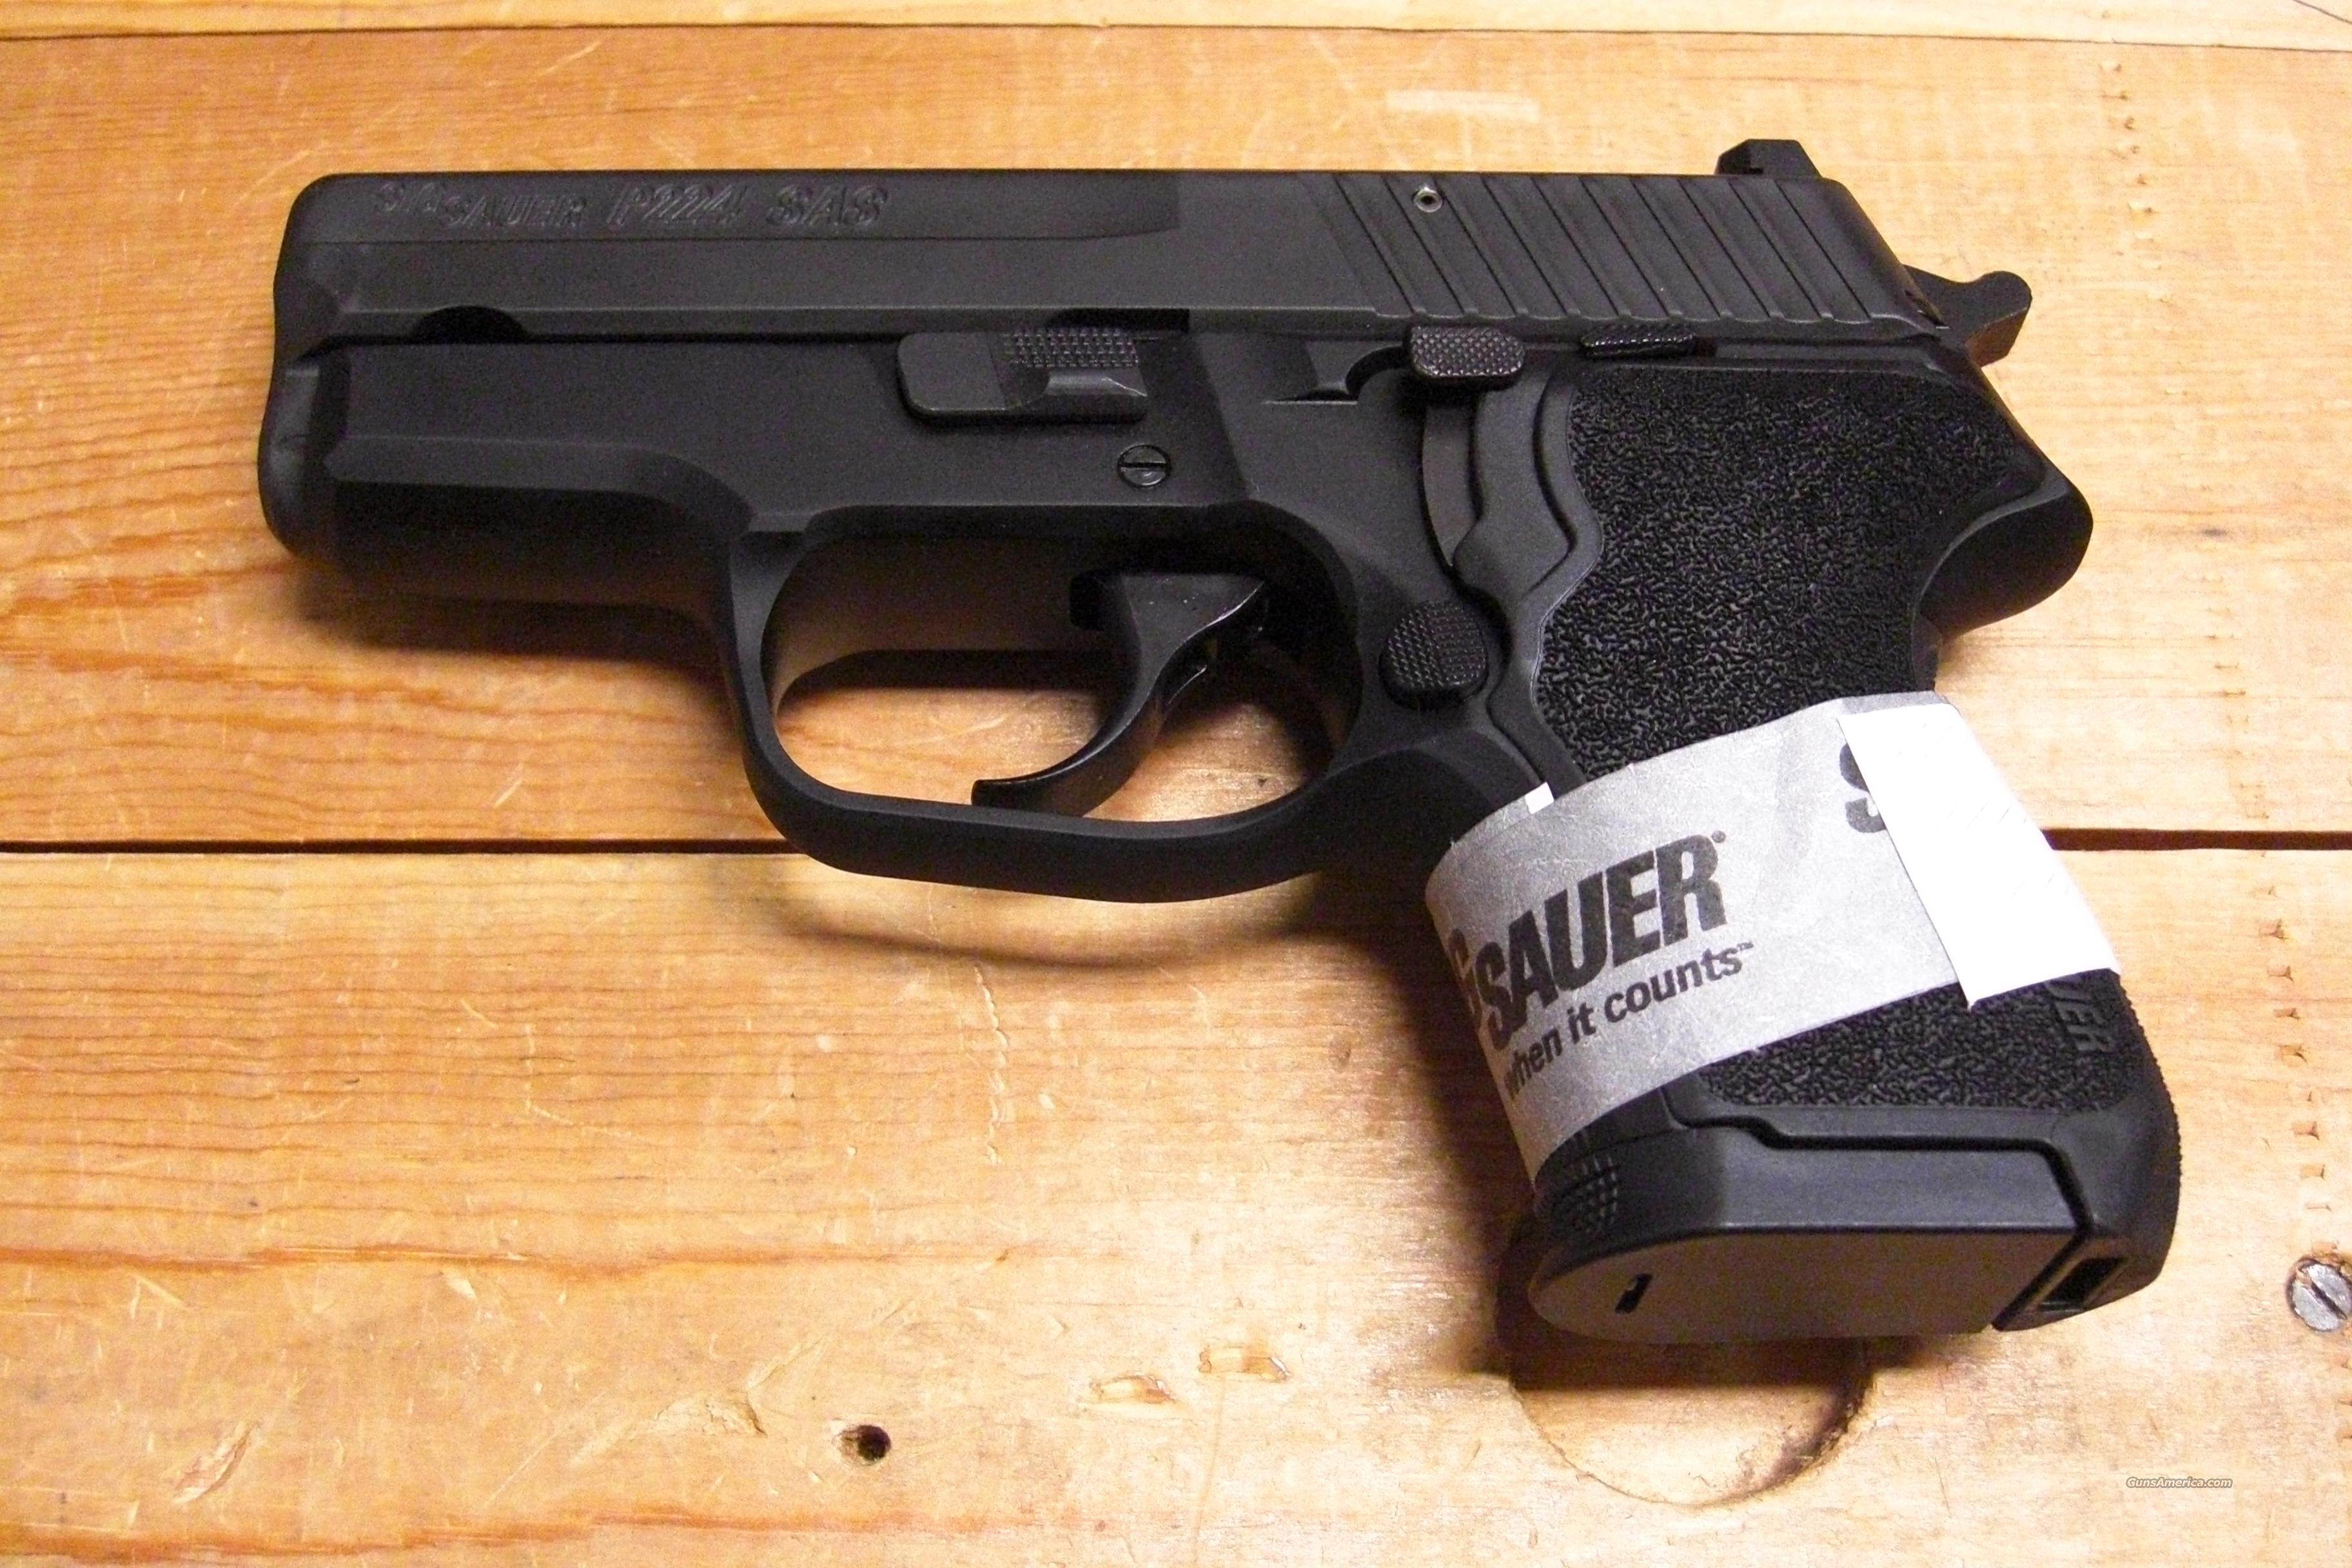 P224 SAS w/night sights  Guns > Pistols > Sig - Sauer/Sigarms Pistols > Other